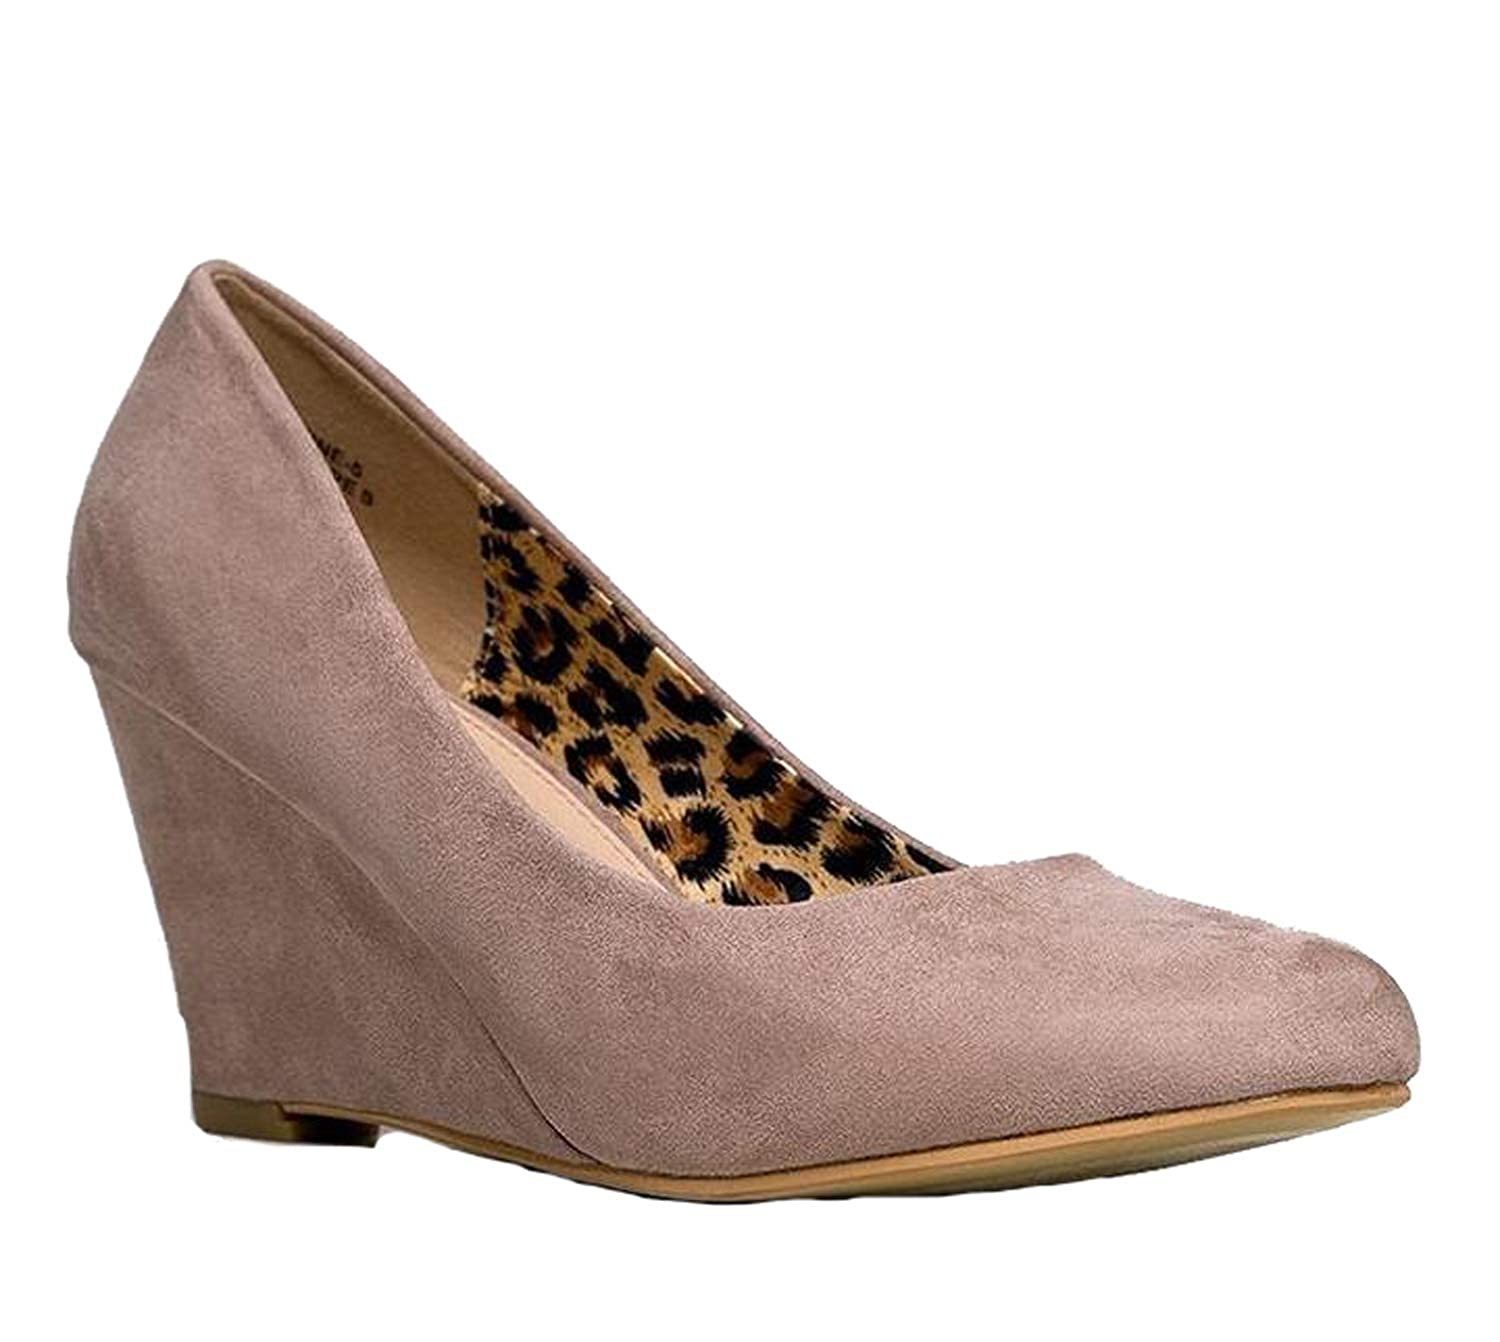 475f7391f44af Bella Marie Women s Nine-5 Classic Almond Toe Mid Wedge Pump Shoes   Amazon.co.uk  Shoes   Bags